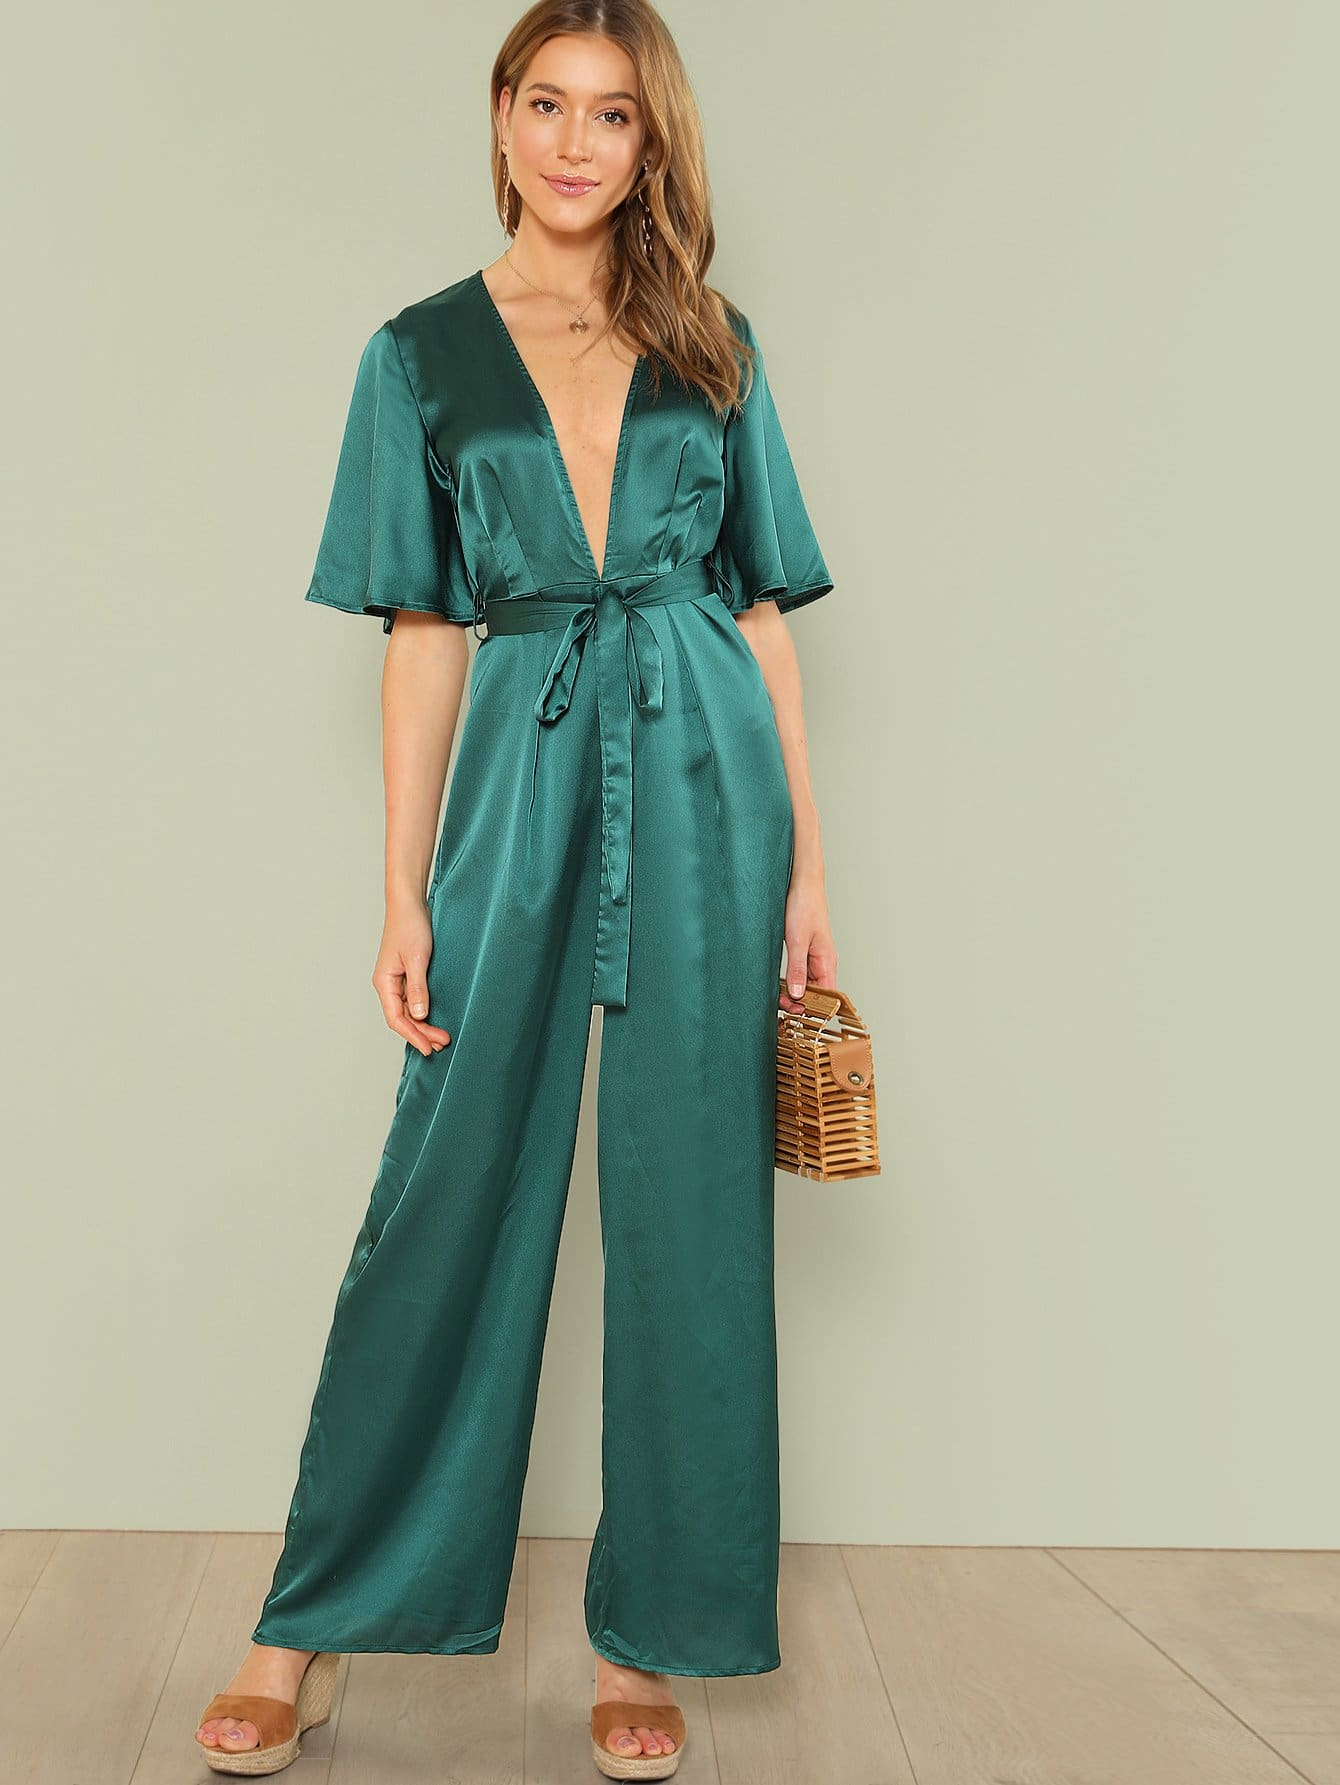 Plunge Neck Self Belted Palazzo Jumpsuit self belted skirt palazzo pants